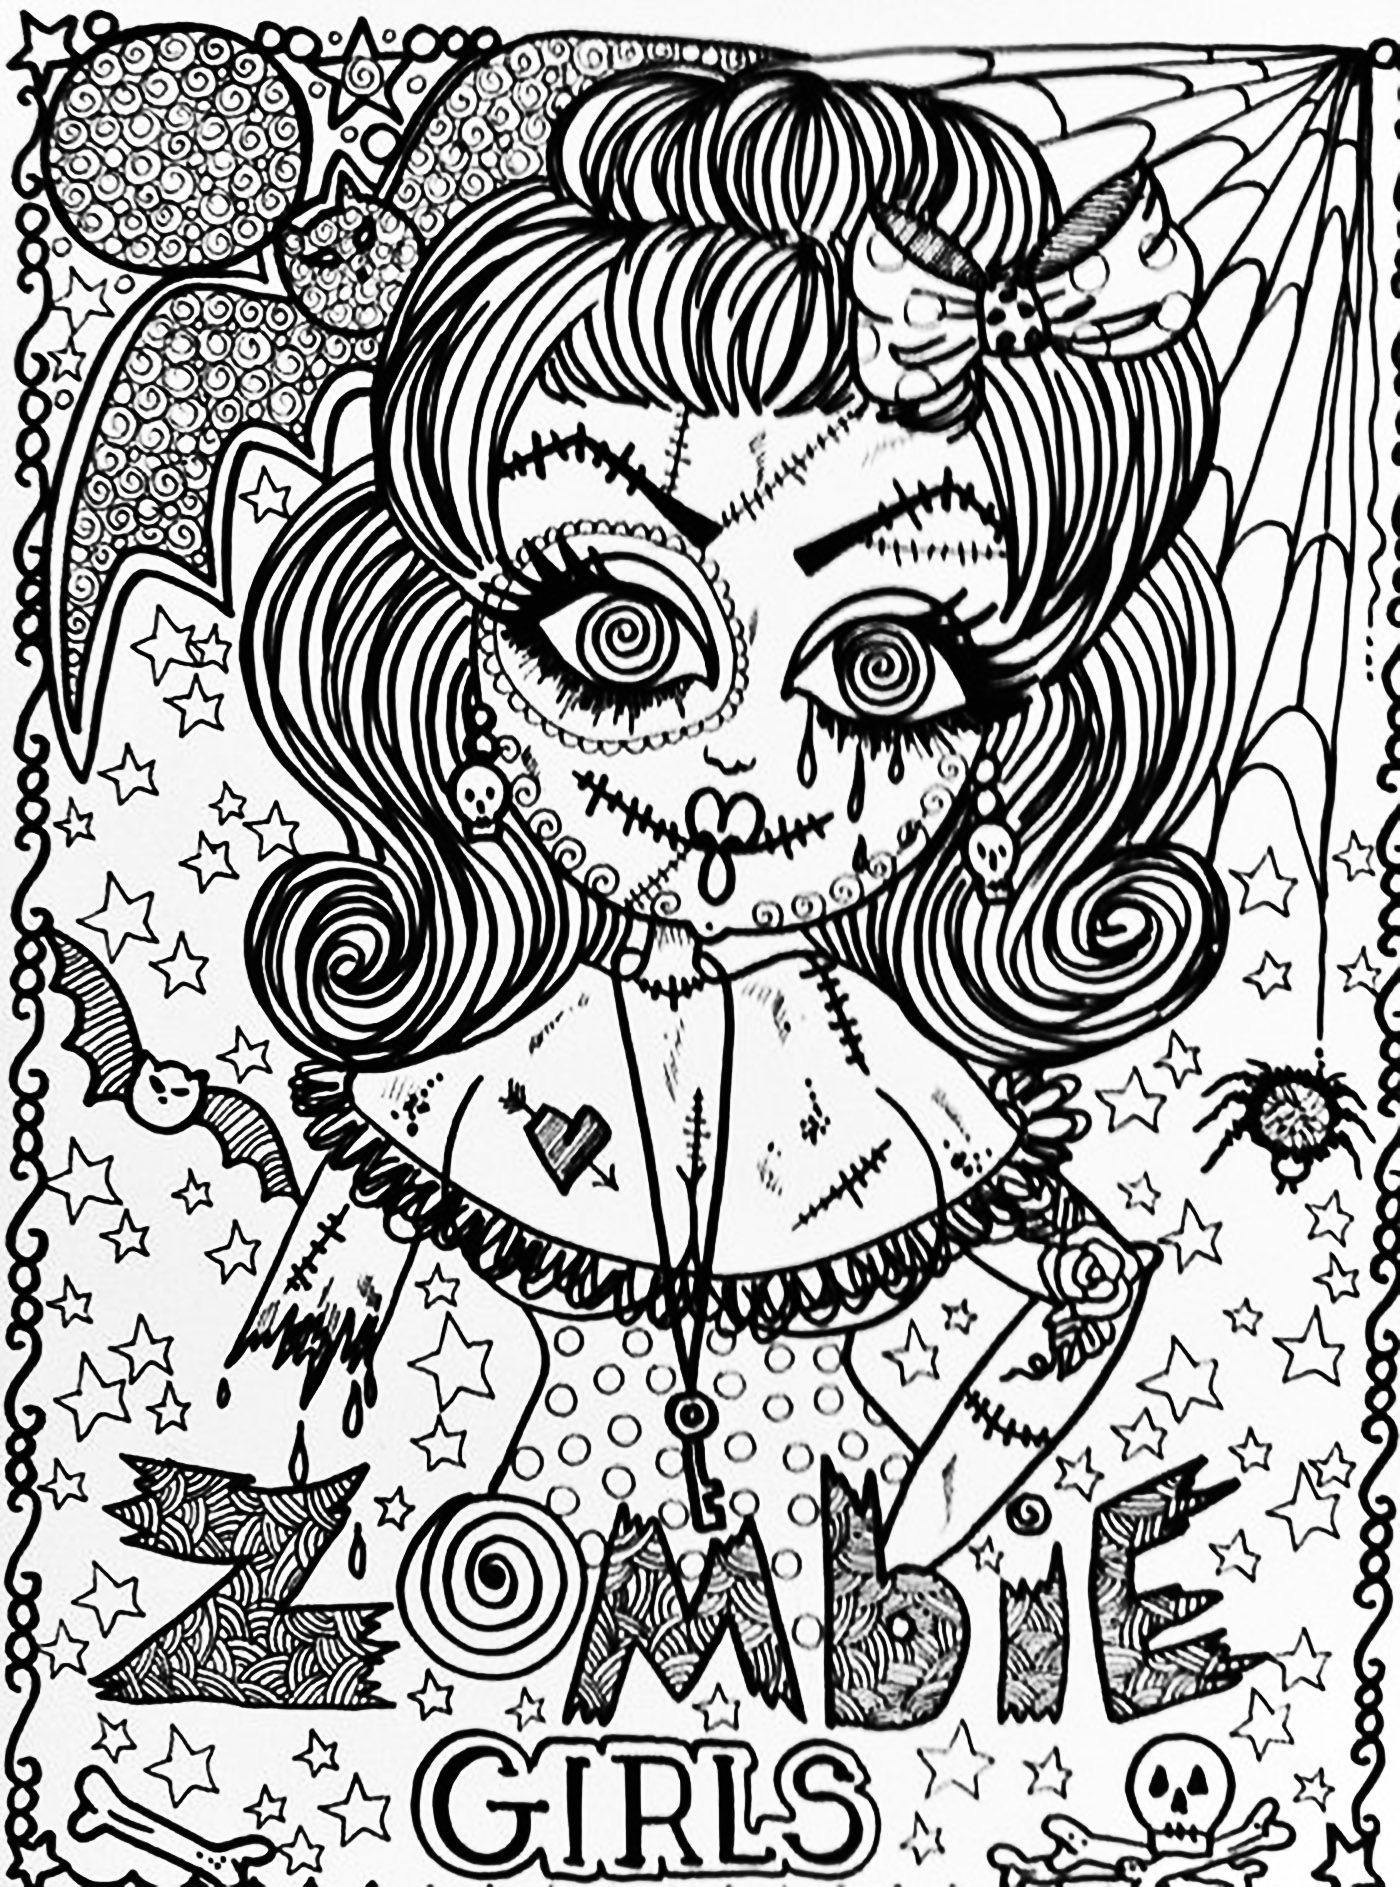 The Zombie Girl Complex Drawing For Halloween From The Gallery Events Halloween Coloring Cute Coloring Pages Halloween Coloring Pages